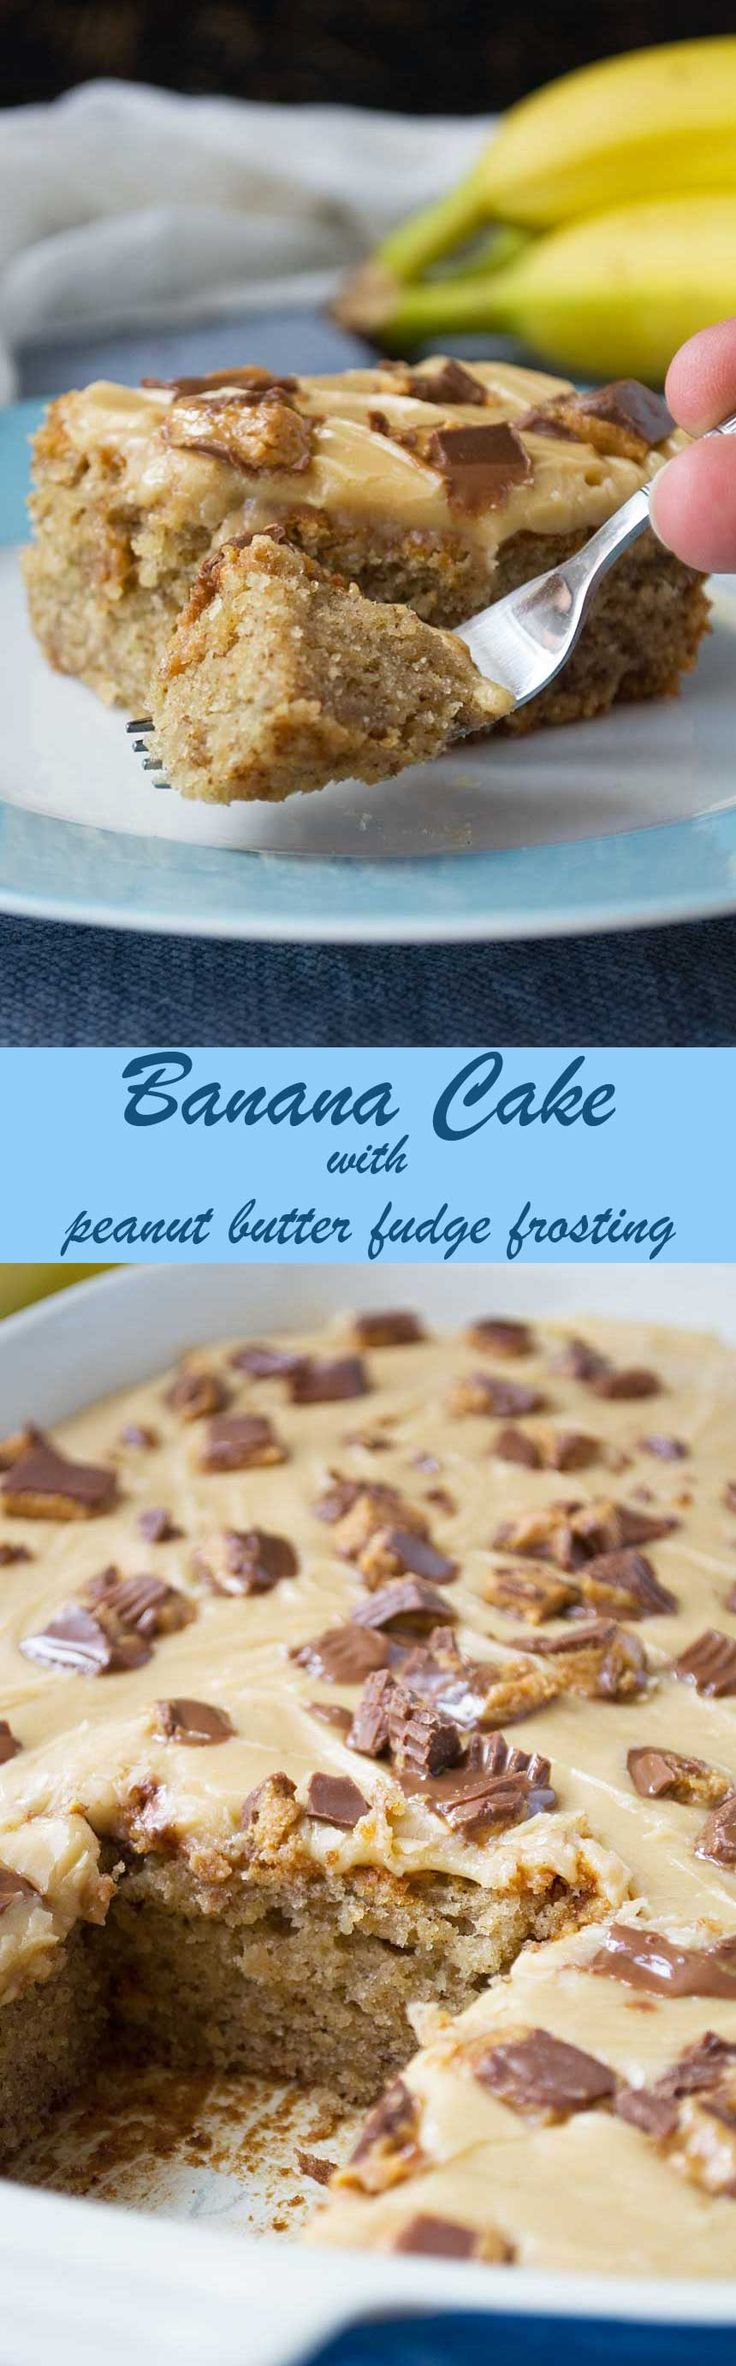 Banana sheet cake with peanut butter fudge frosting